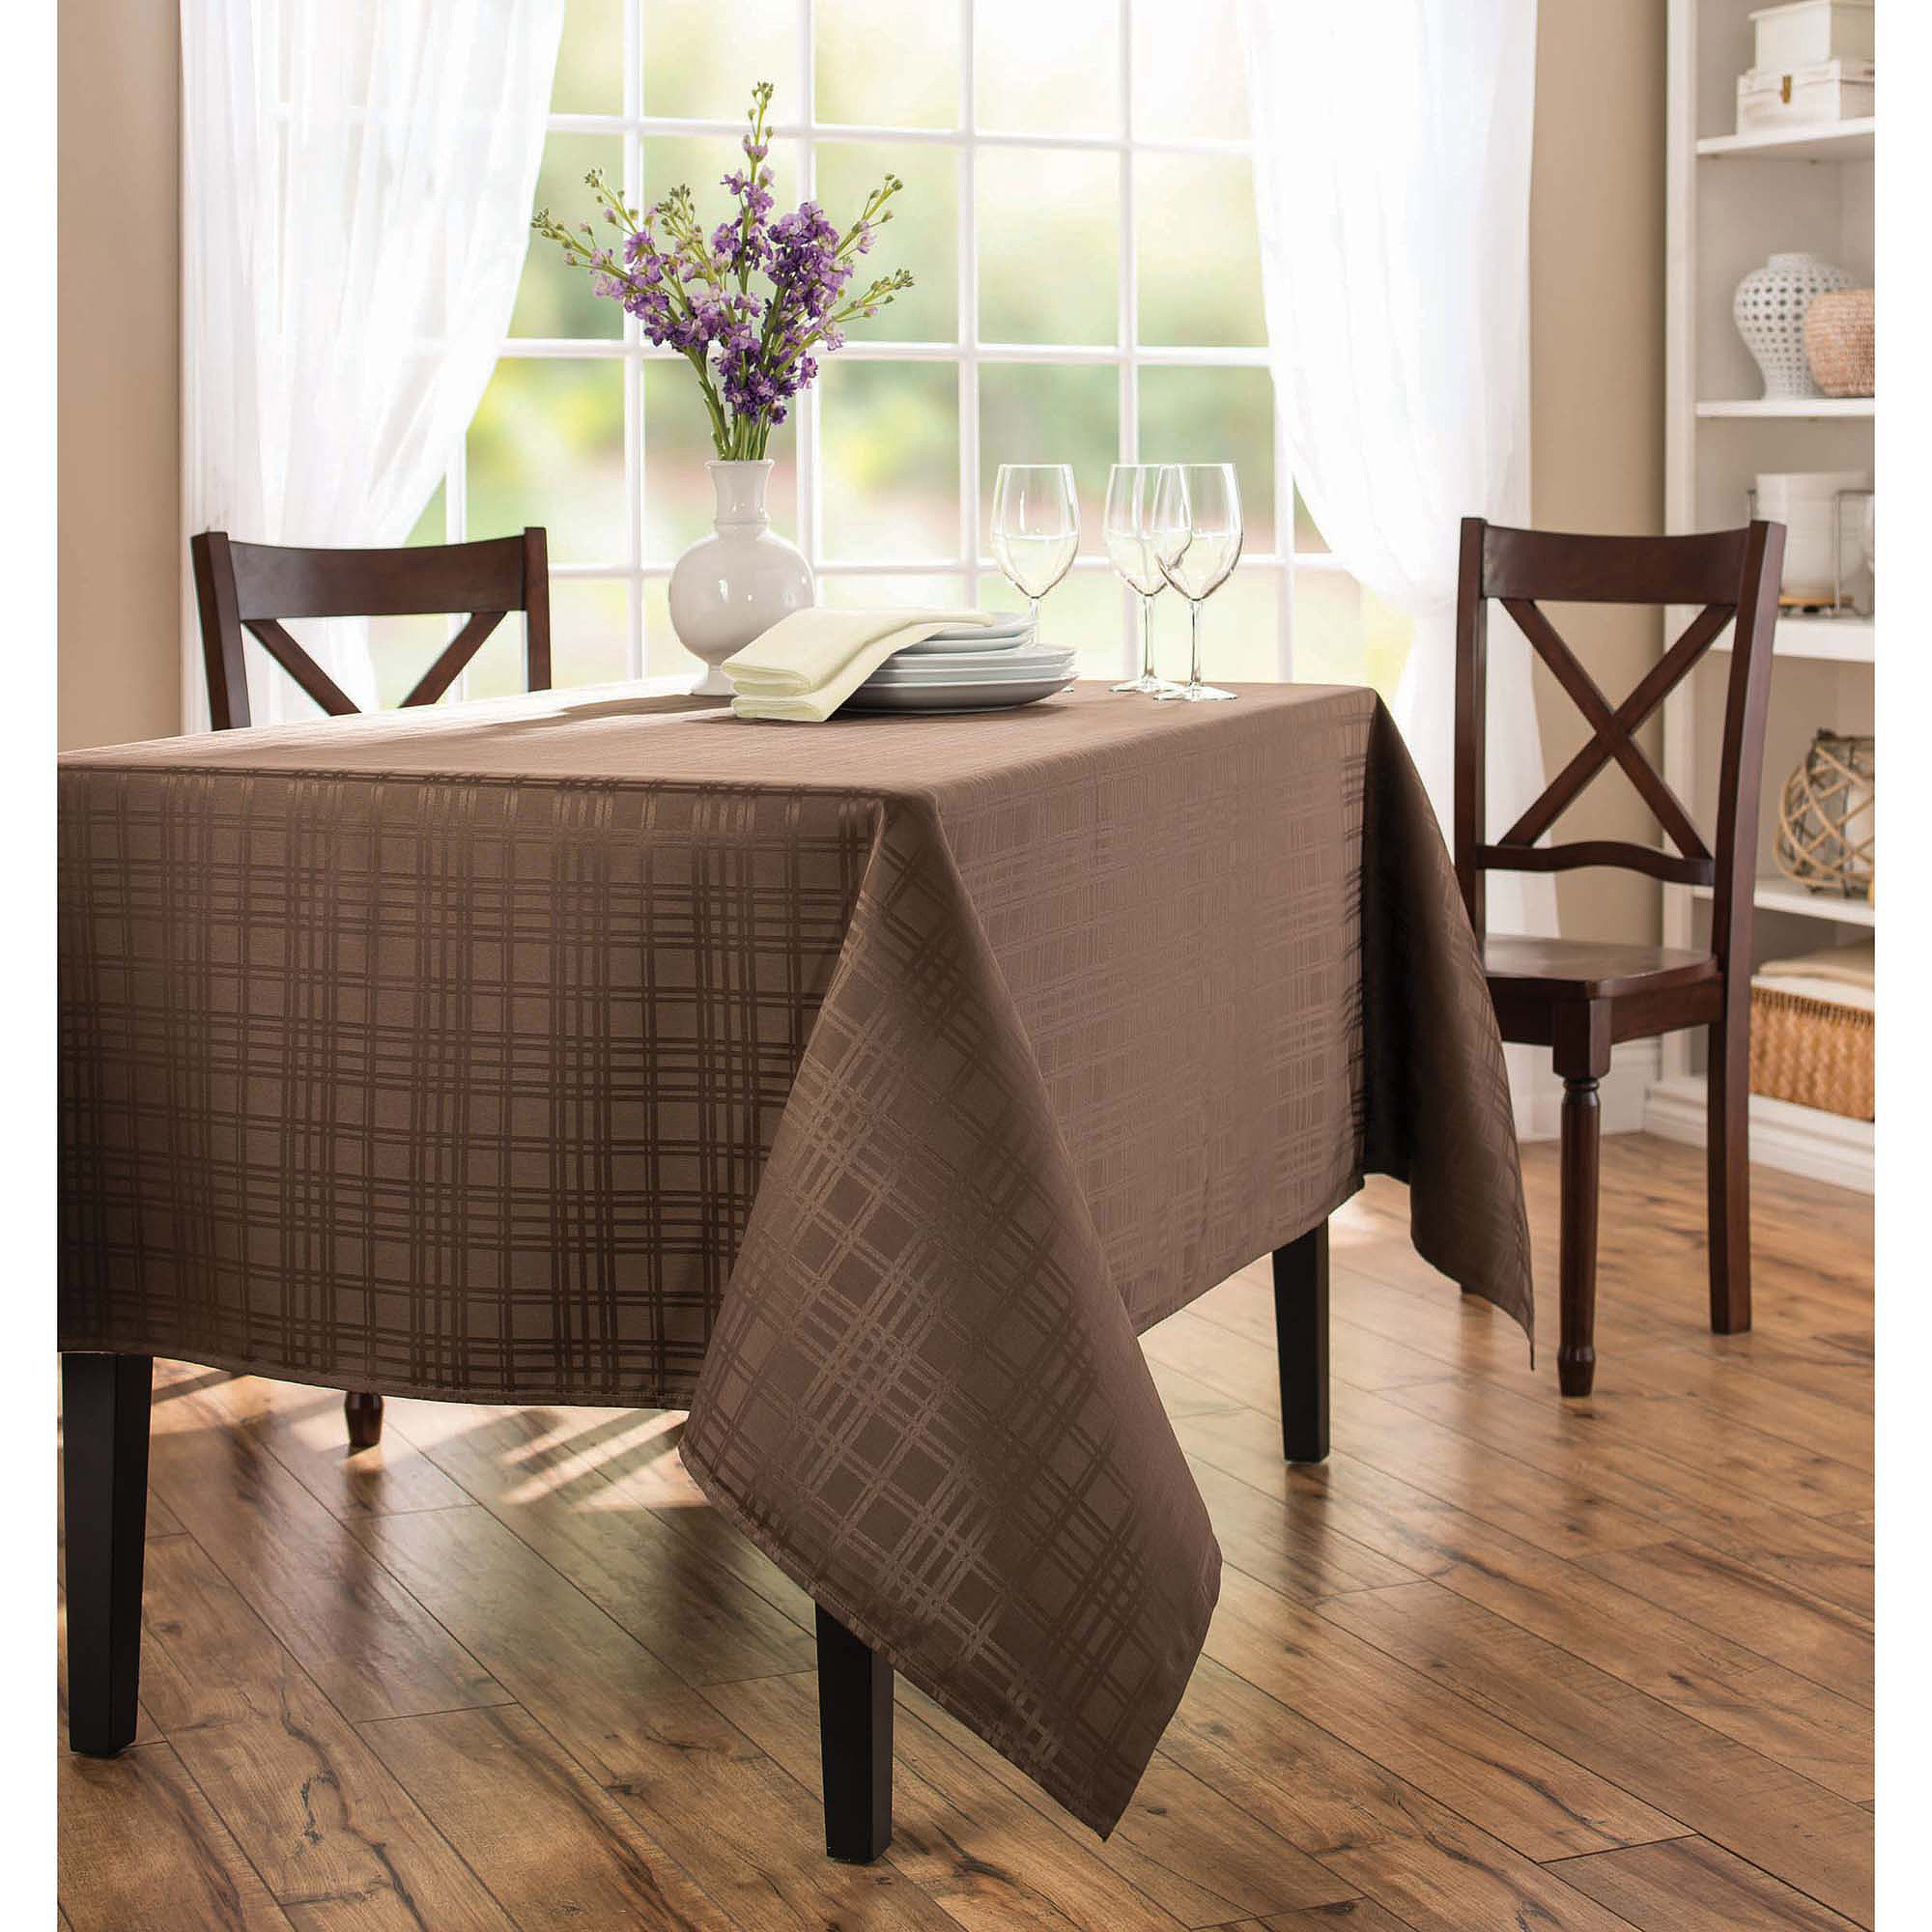 Better Homes and Gardens Microfiber Table Cloth